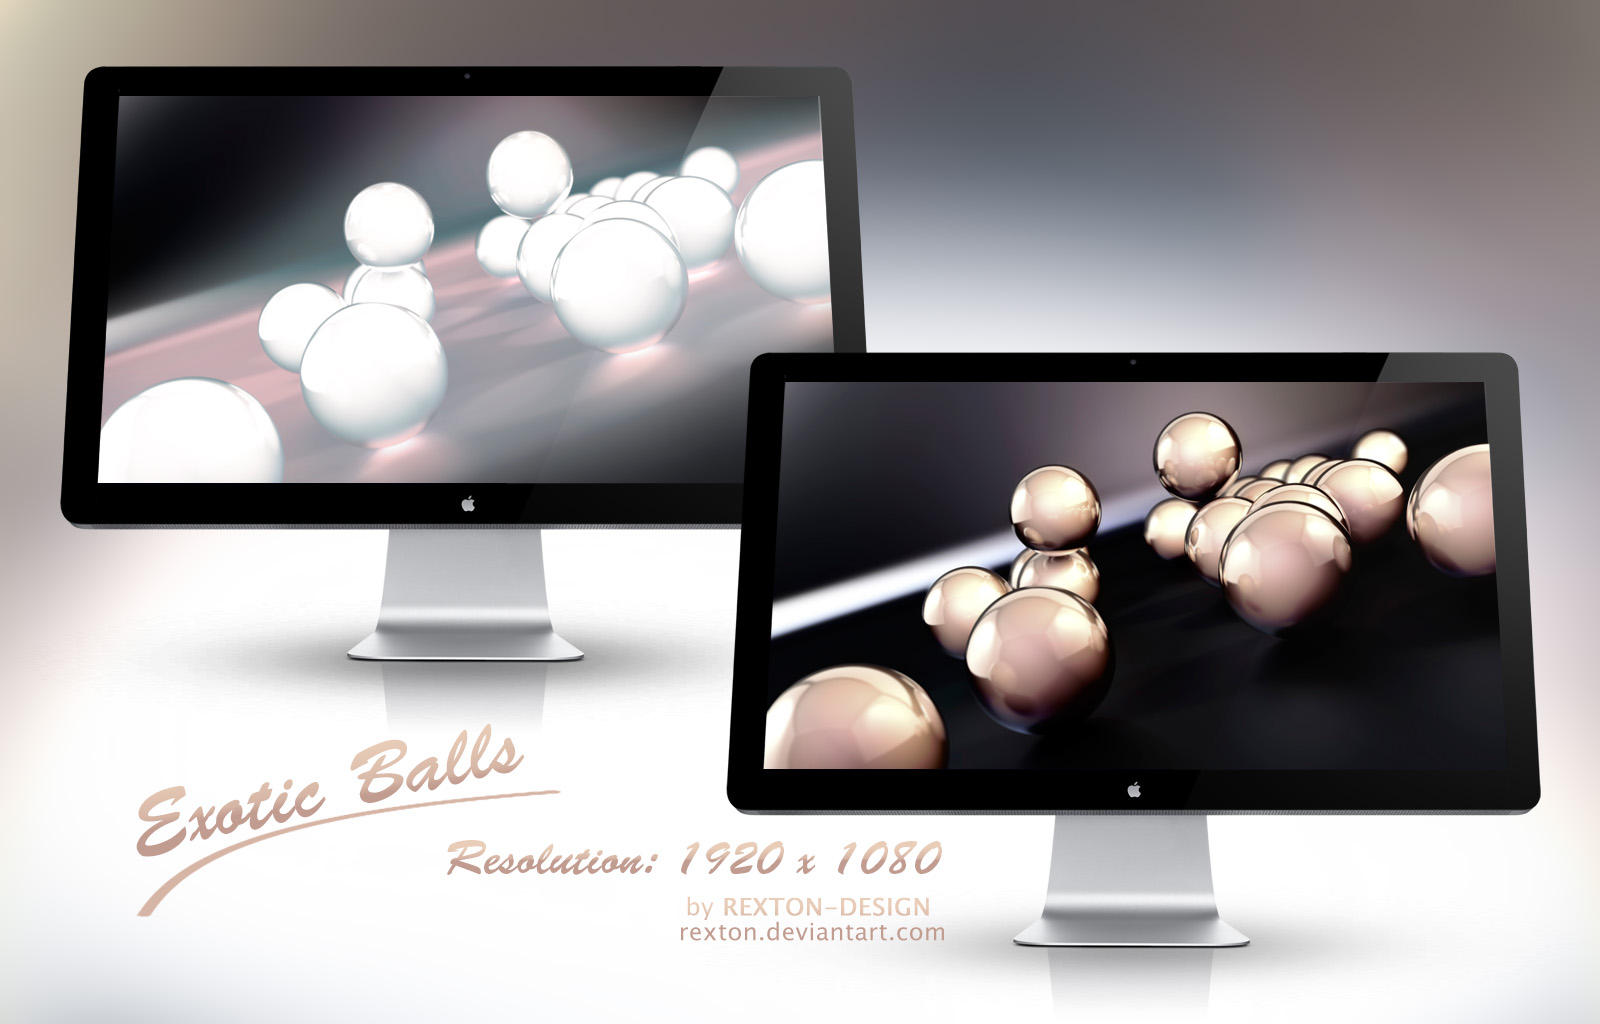 Exotic Balls by REXTON